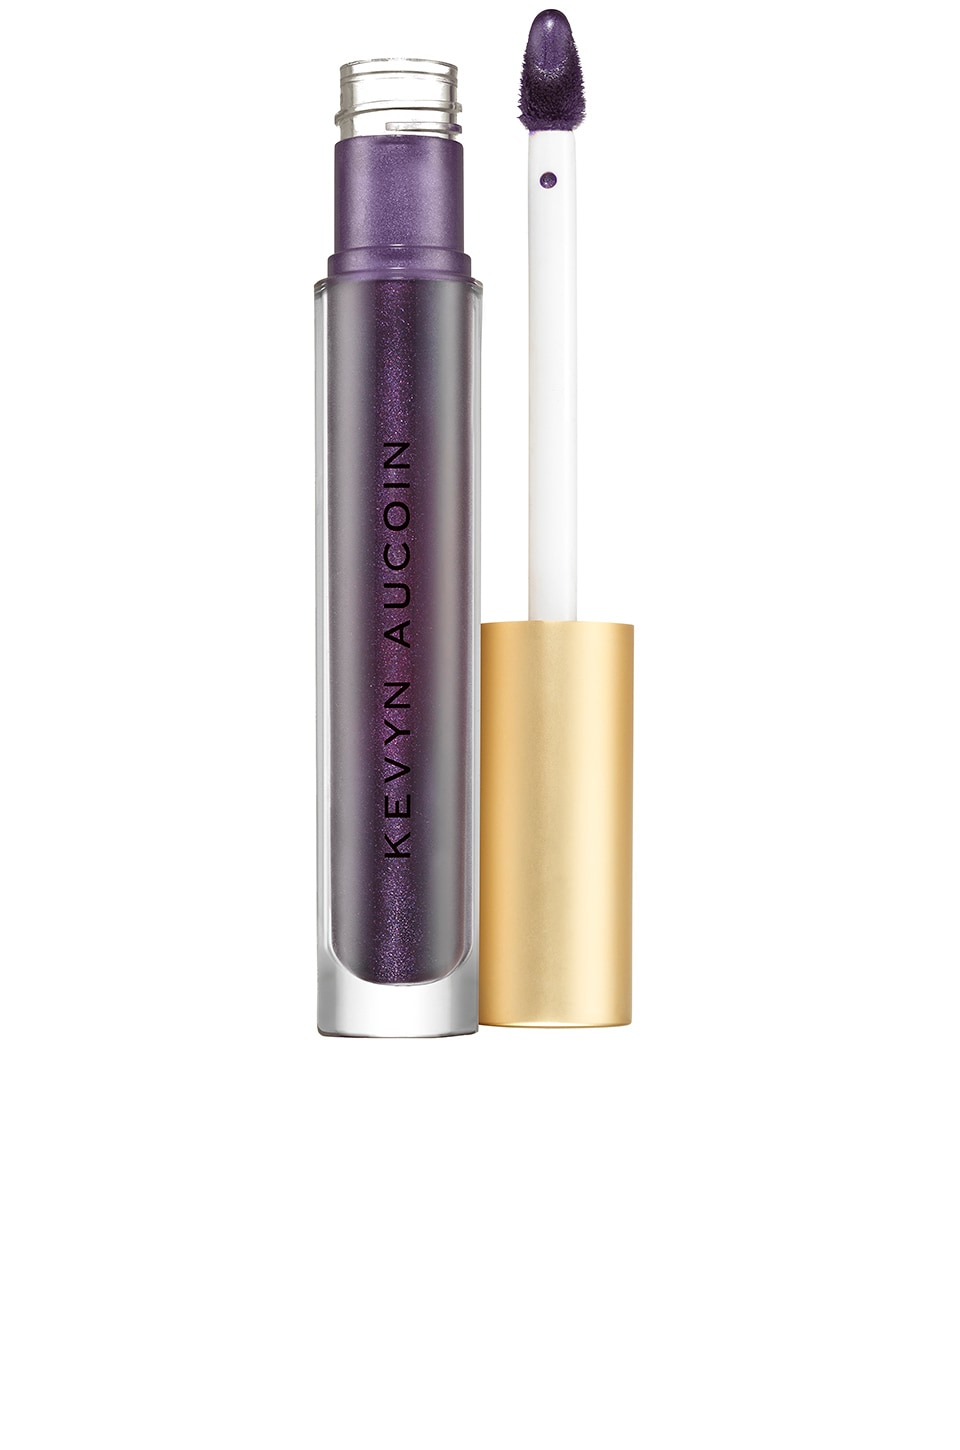 Kevyn Aucoin The Molten Metals Lip Color in Carbon